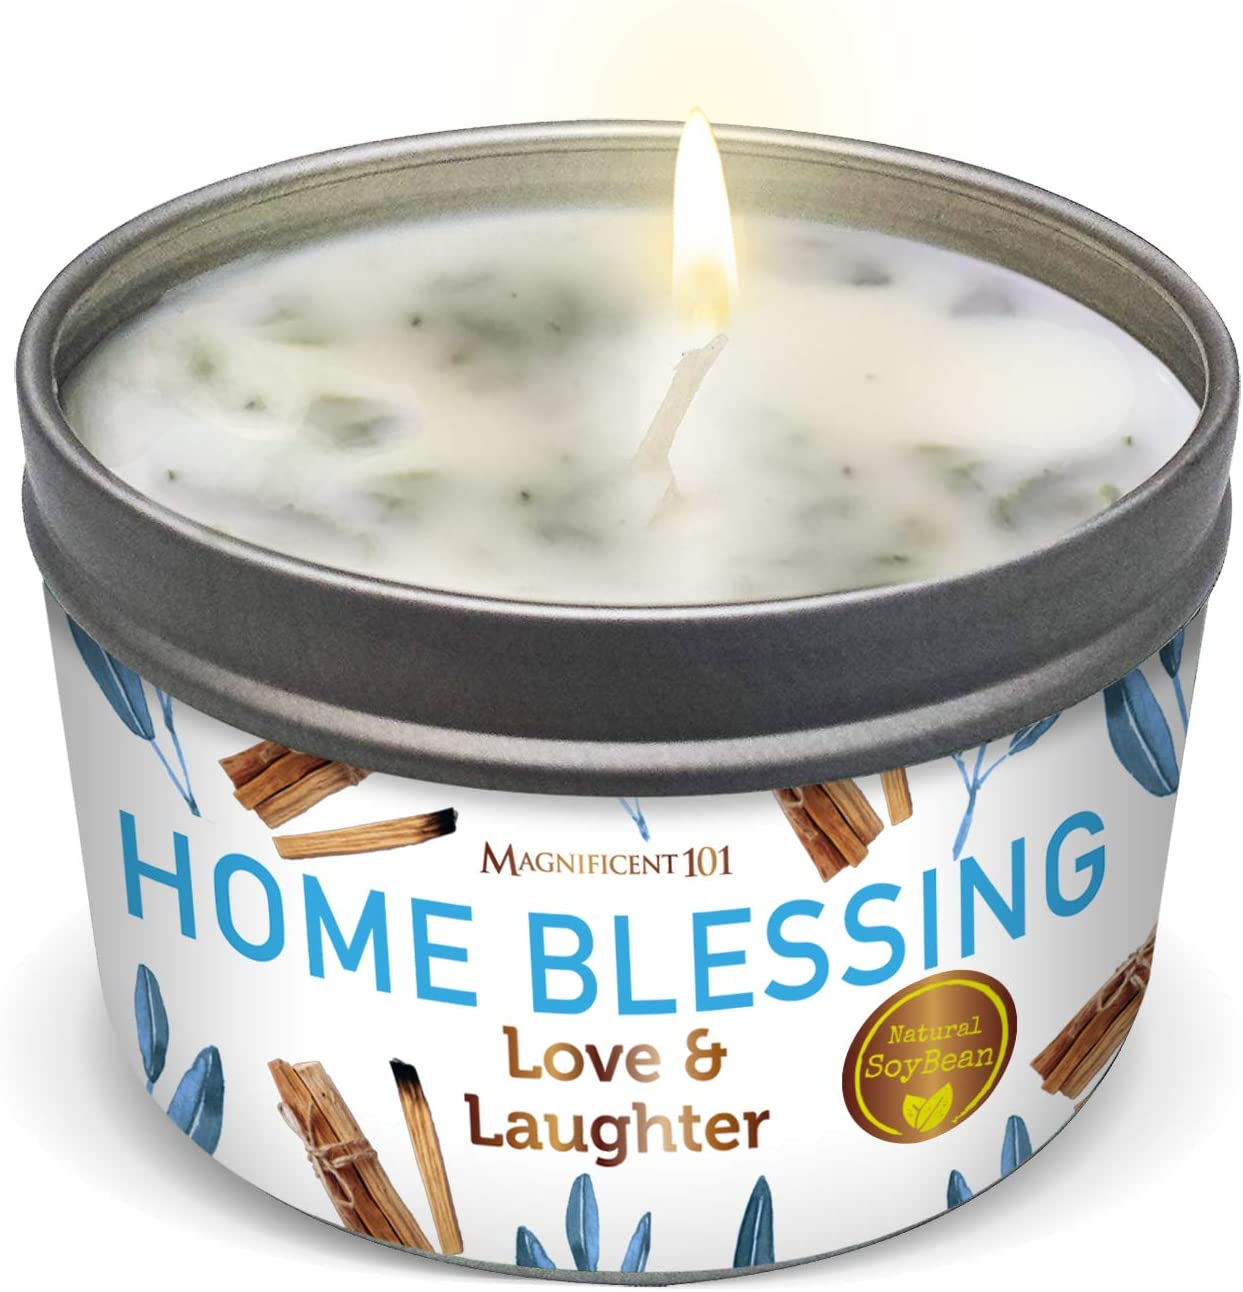 Home Blessing Aromatherapy Candle for Love and Laughter - Sage, Bergamot, Sandalwood Scented Natural Soybean Wax Tin Candle for Purification and Chakra Healing Under $20